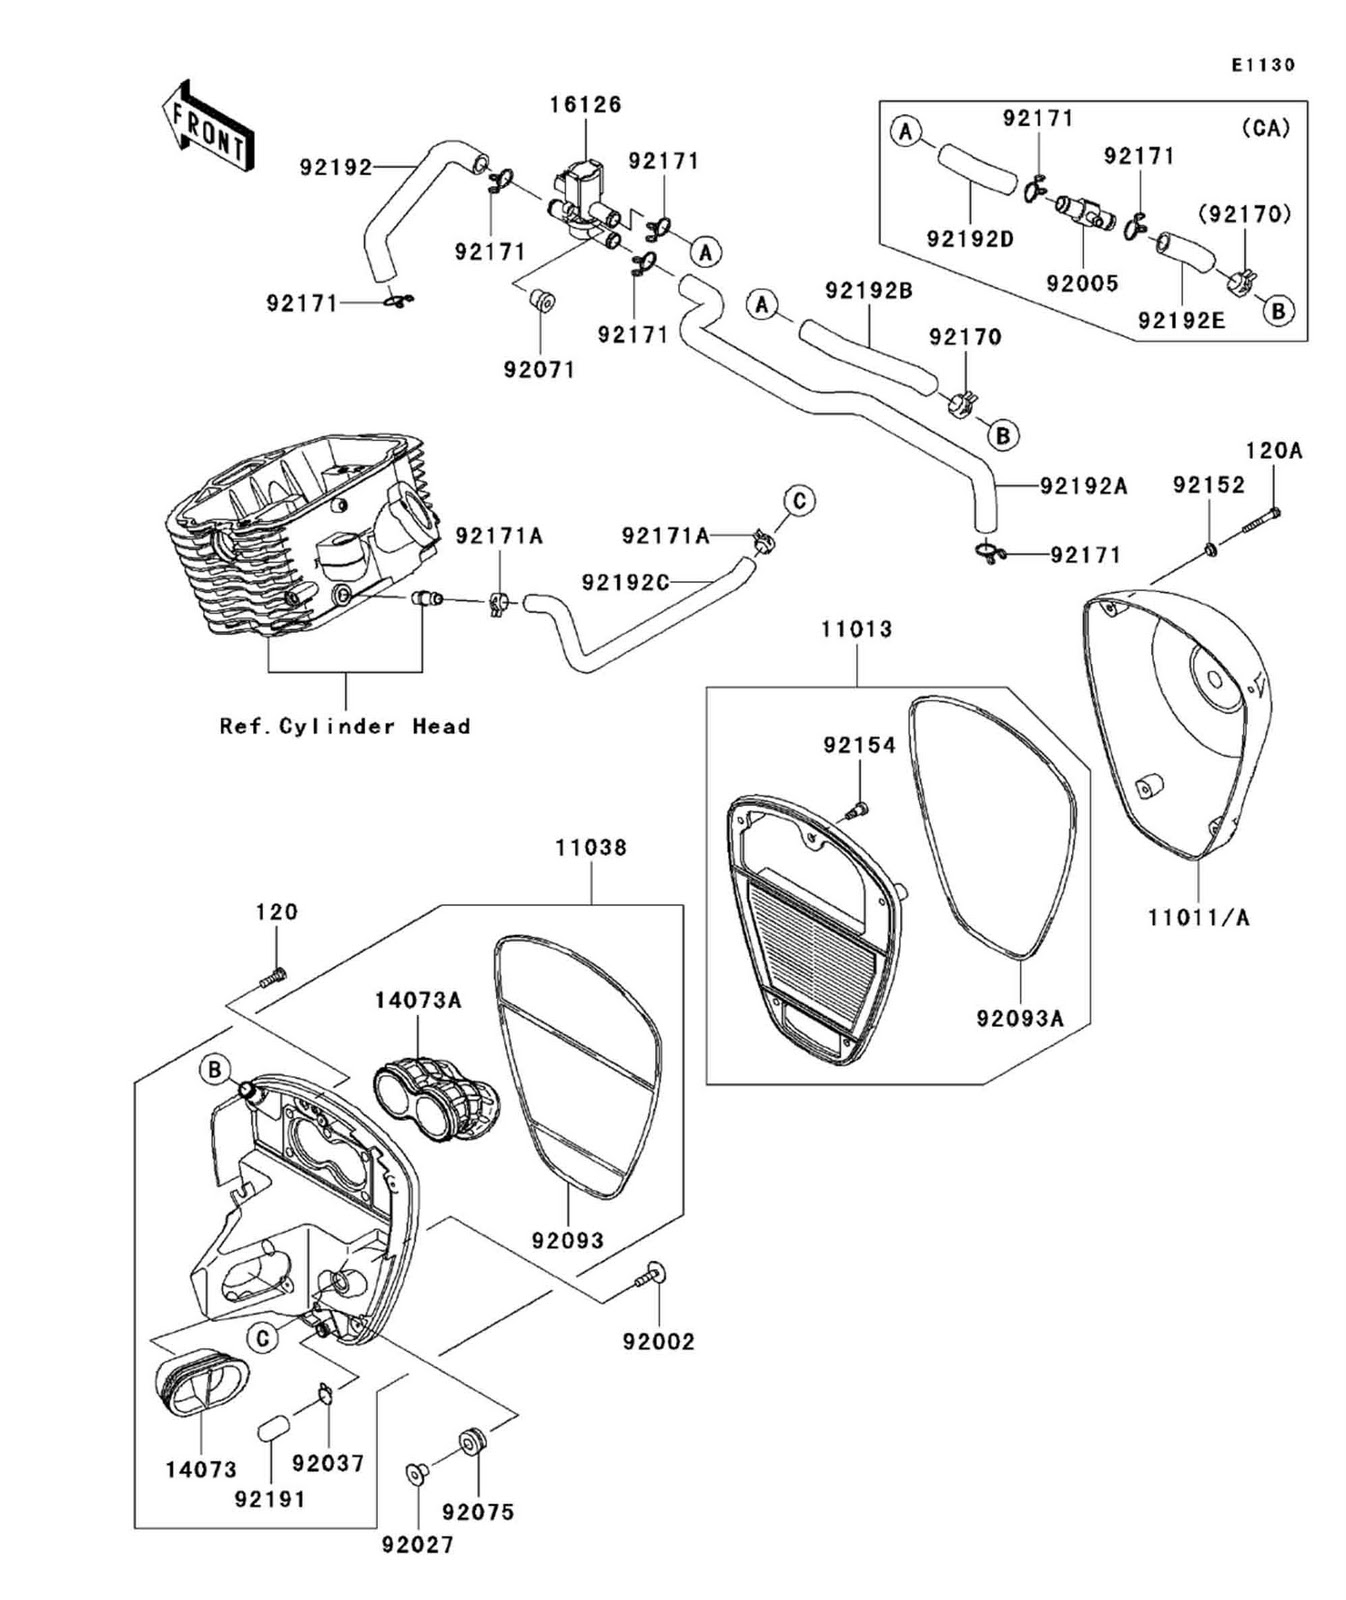 kawasaki 1 4 hp carburetor diagram  kawasaki  free engine image for user manual download